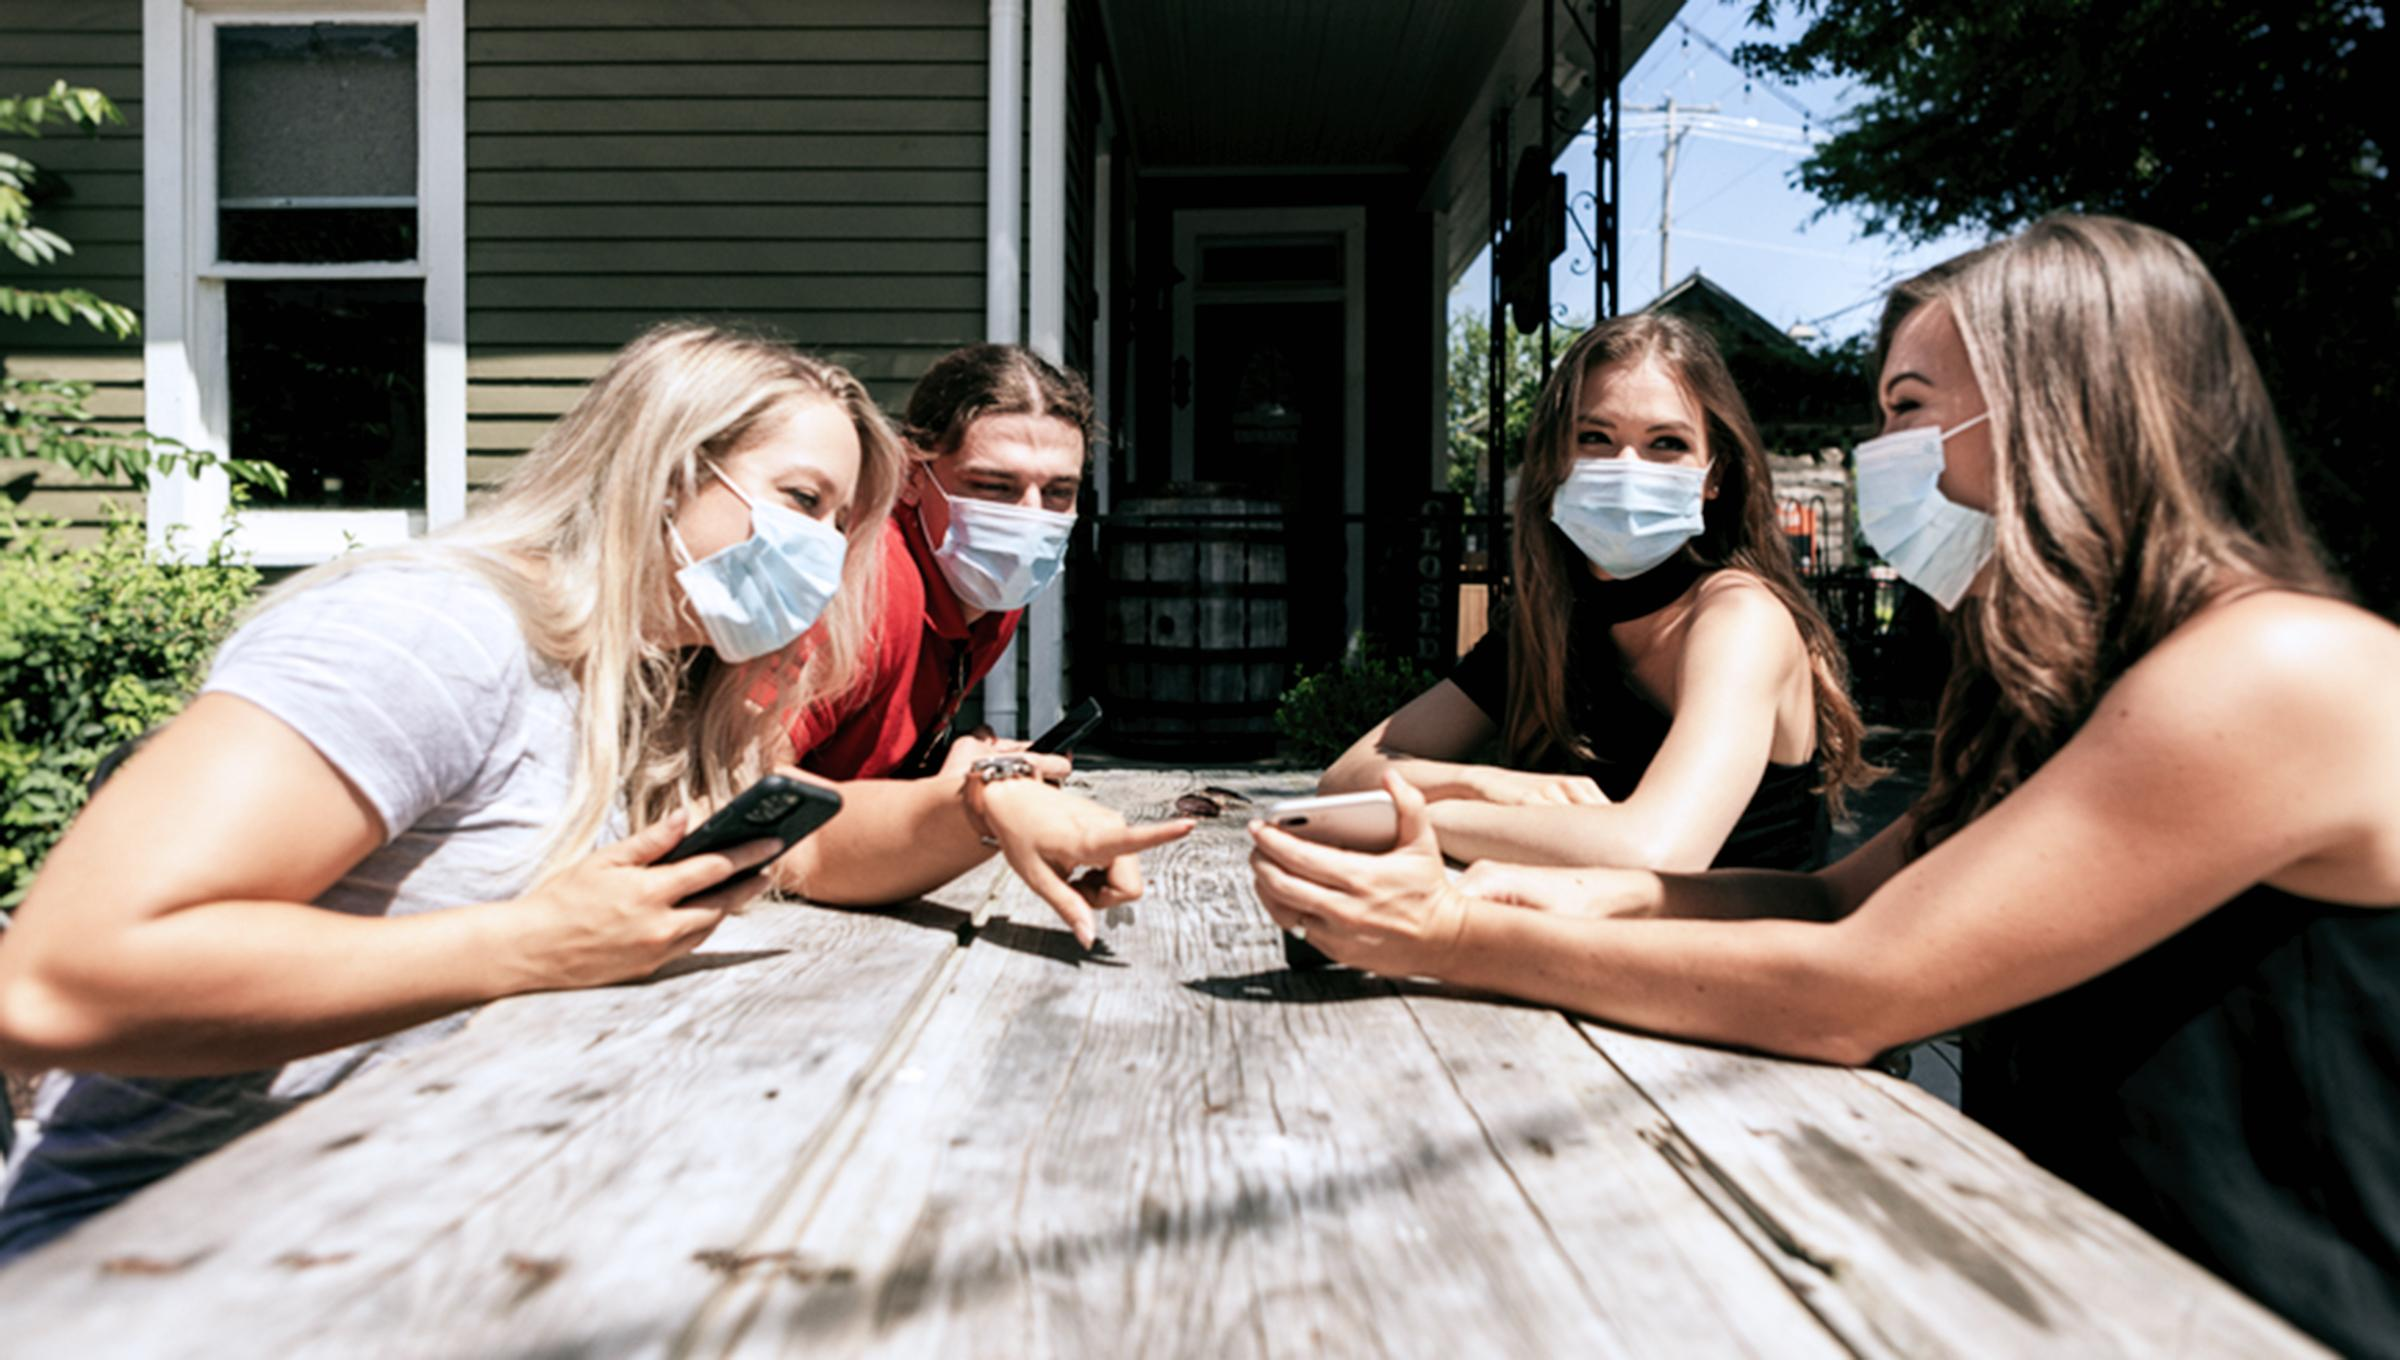 Friends around picnic table with masks on